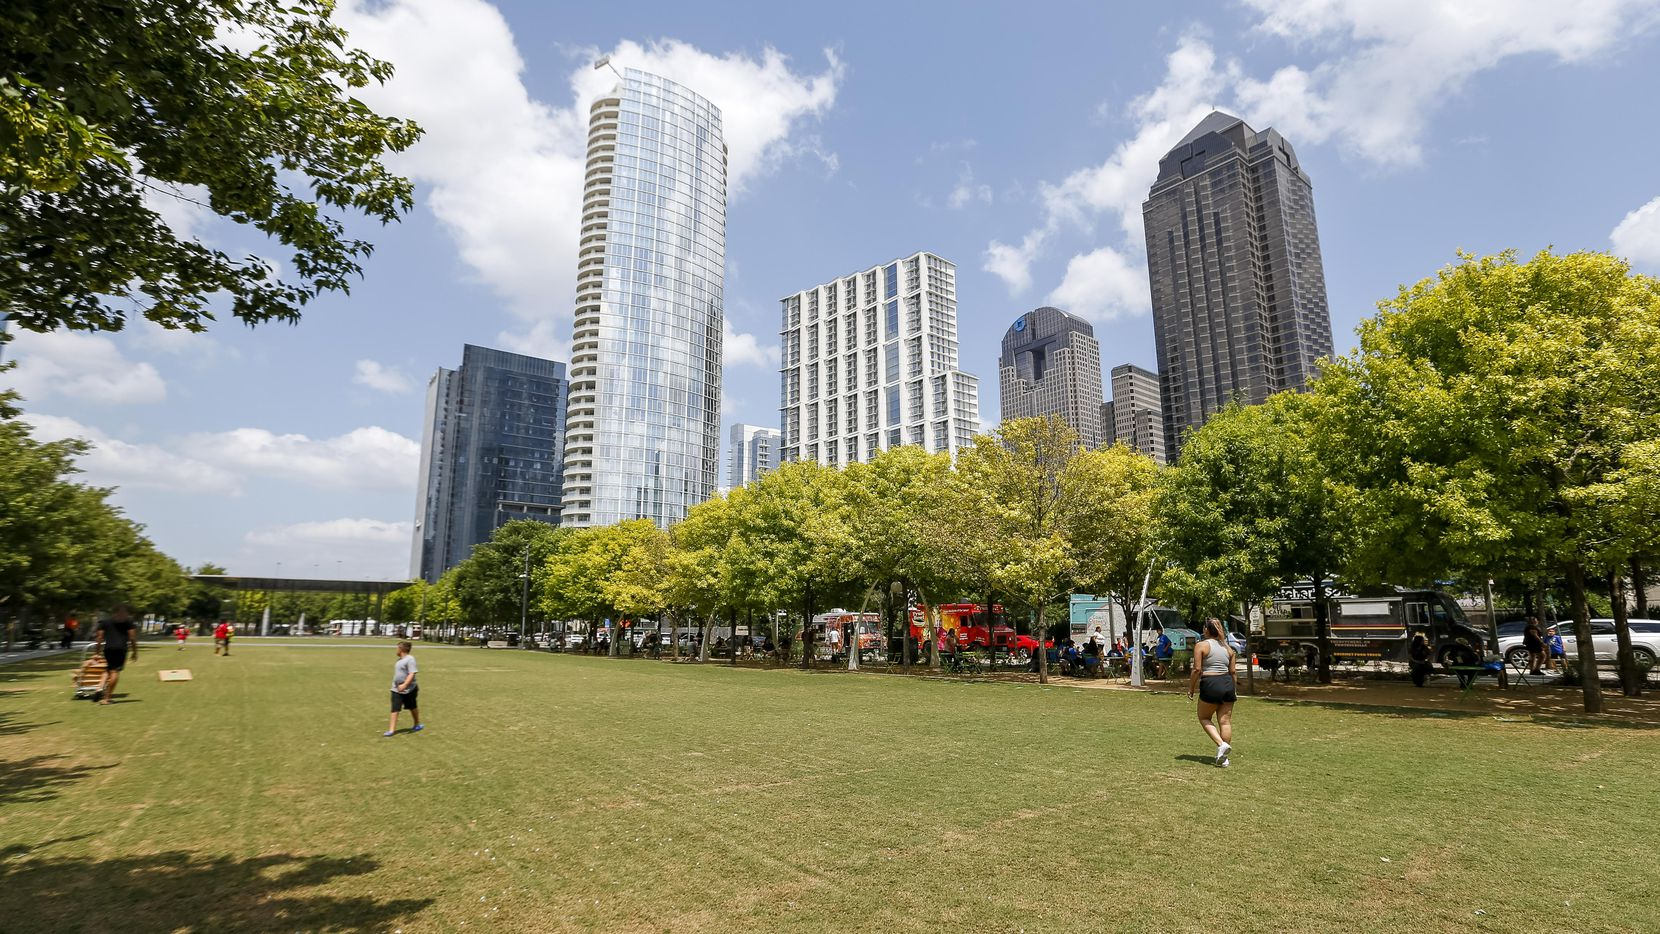 Klyde Warren Park needs volunteers to assist with events, programs, guest services and administrative support.